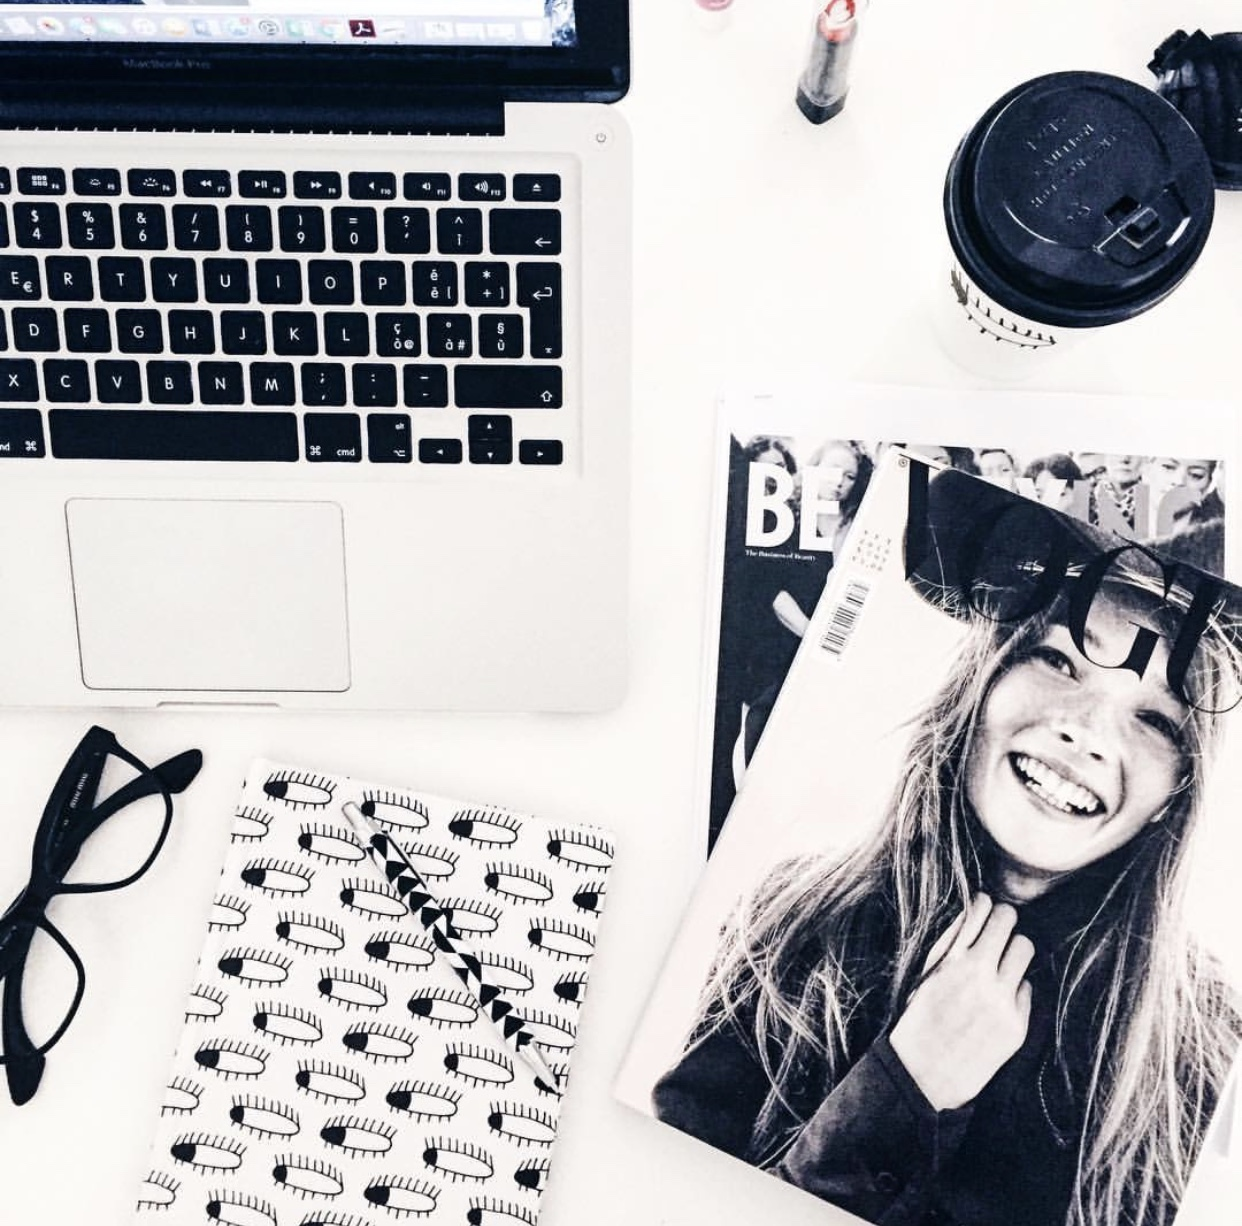 Vogue, coffee,  Apple,  macbookpro,  blackandwhite, career girl, fashion student, office, interior inspo, minimal, blonde, white tee, luxury